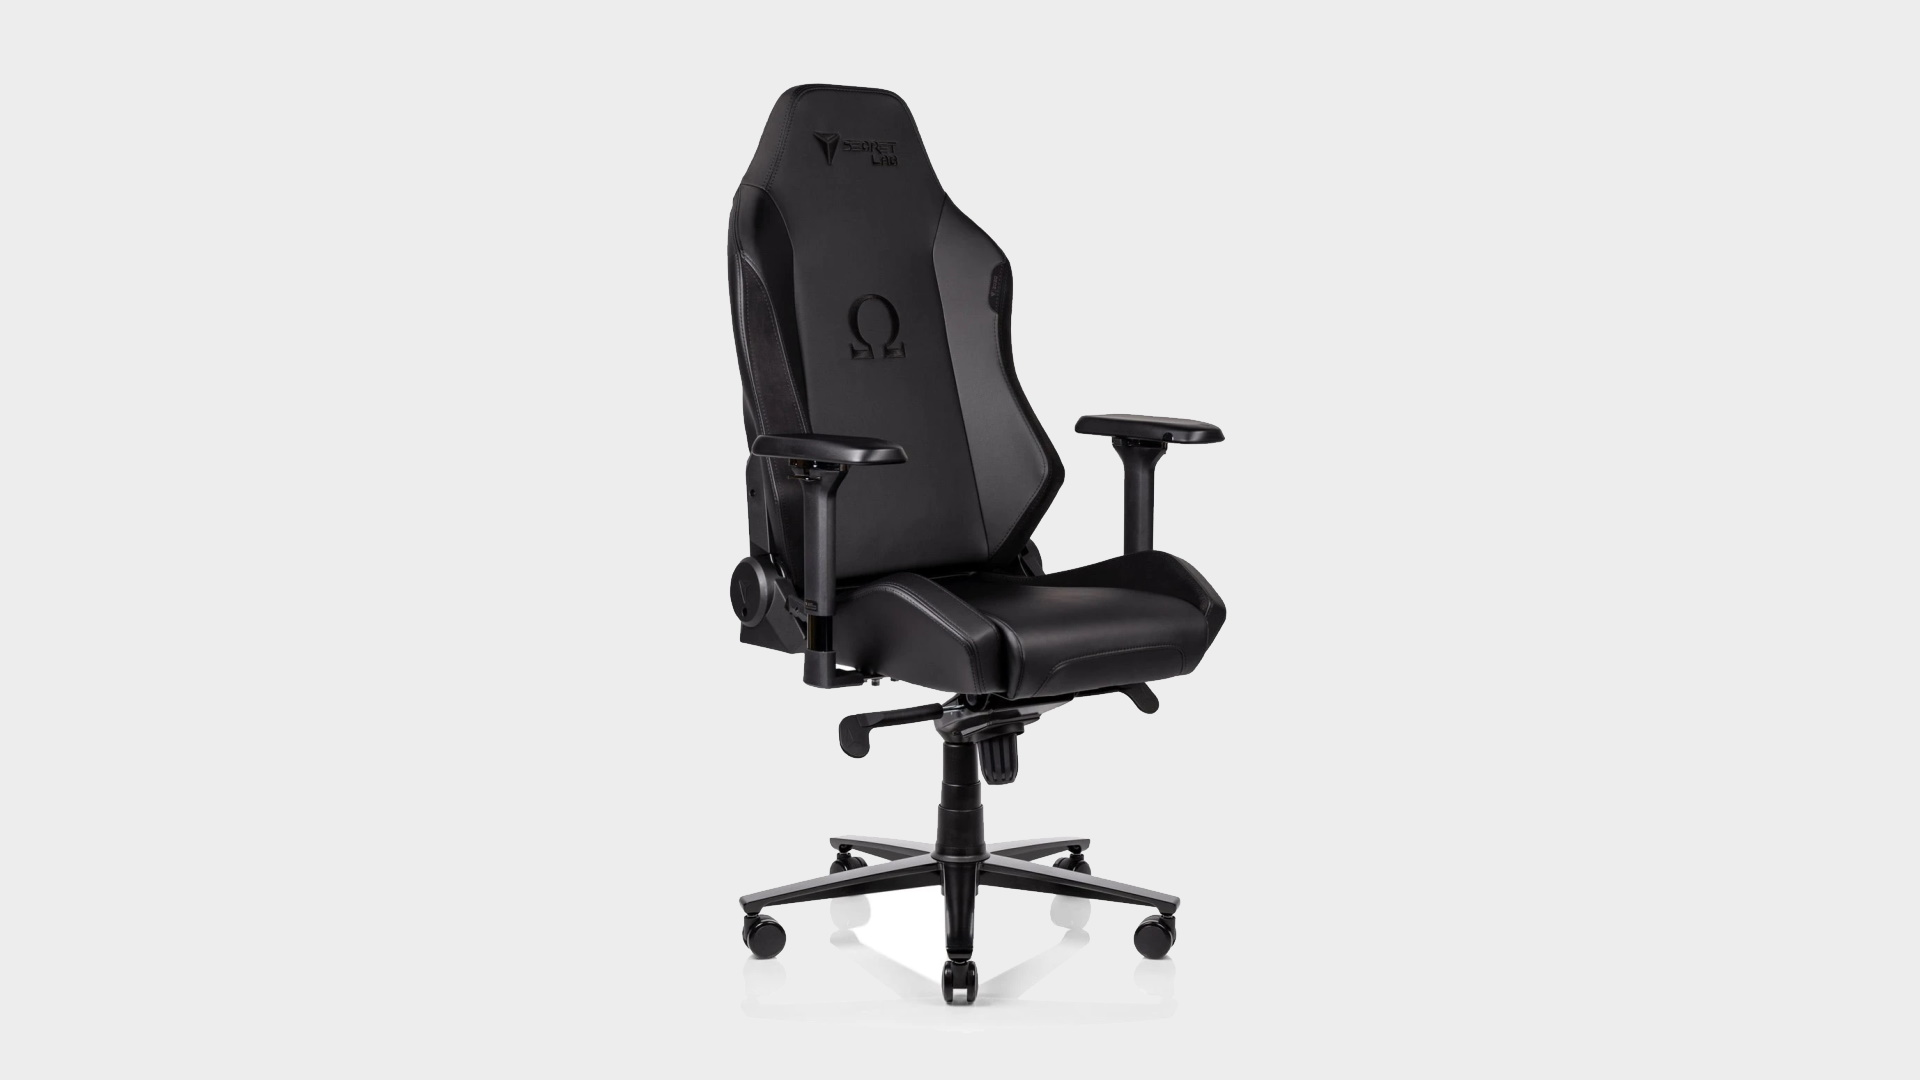 Secretlab OMEGA 2020 Series gaming chair on a grey background.